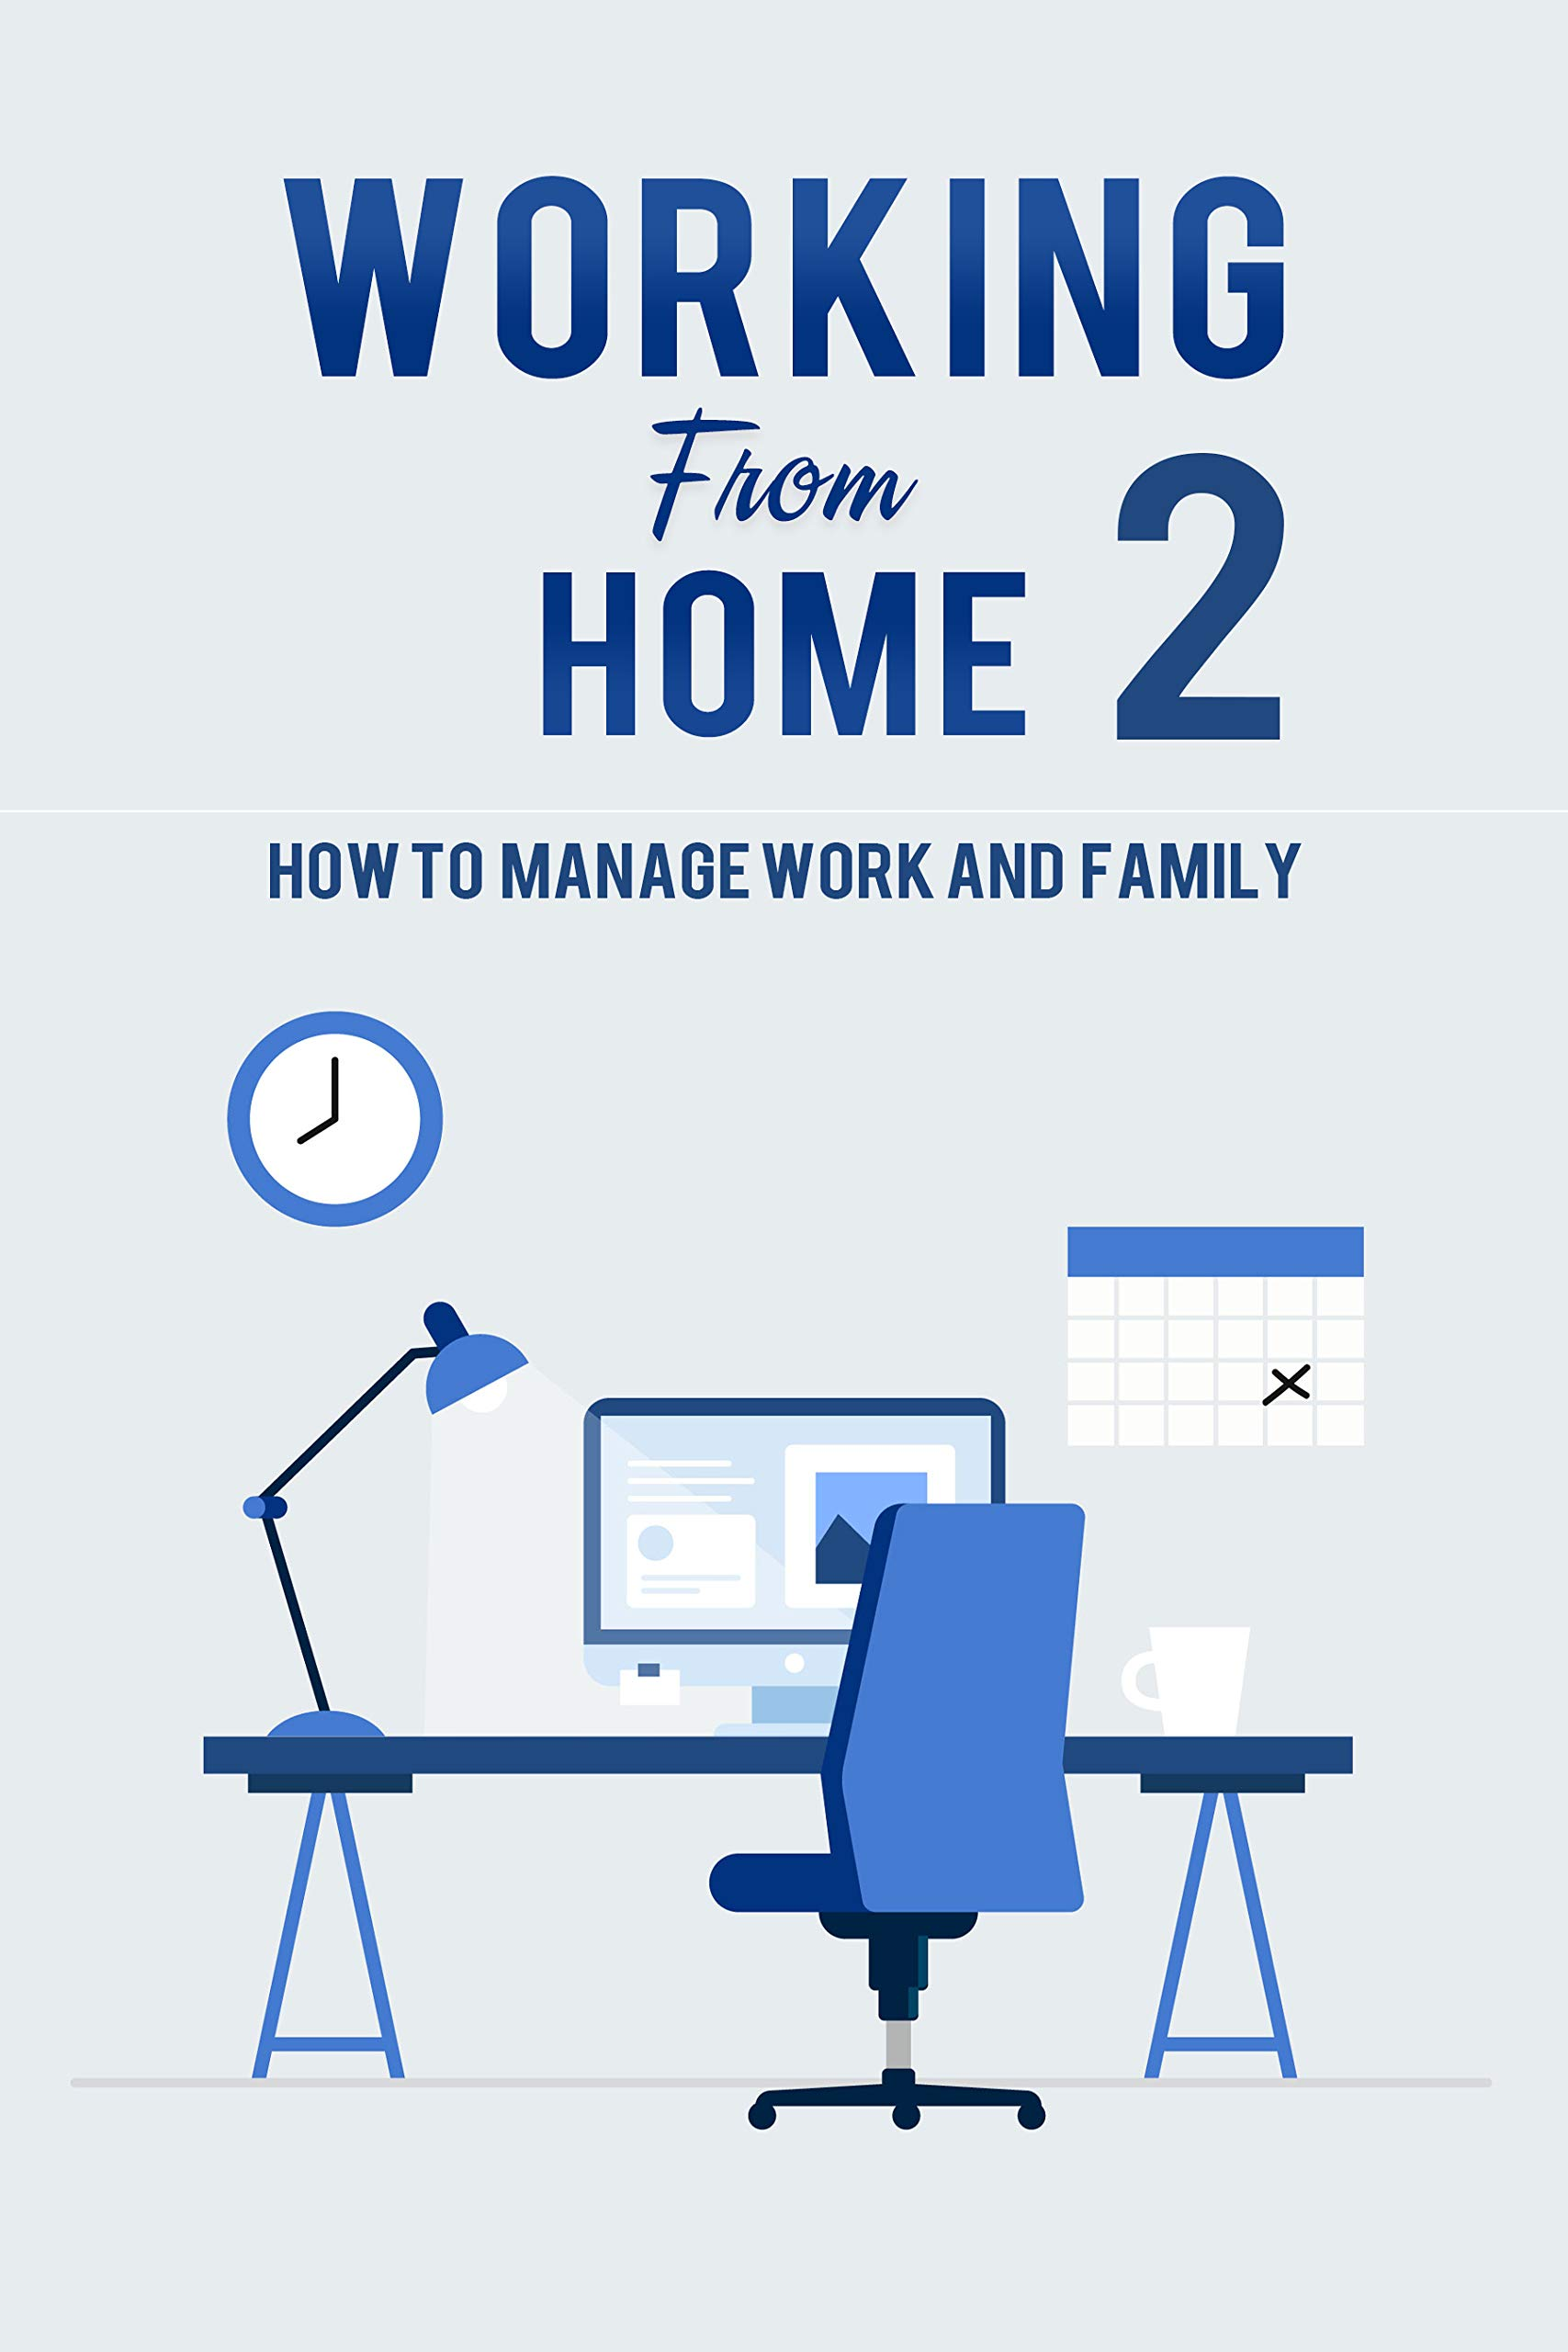 Working from Home 2: How to manage work and family. Guide for a healthy work-life balance while being a working at home mom or dad